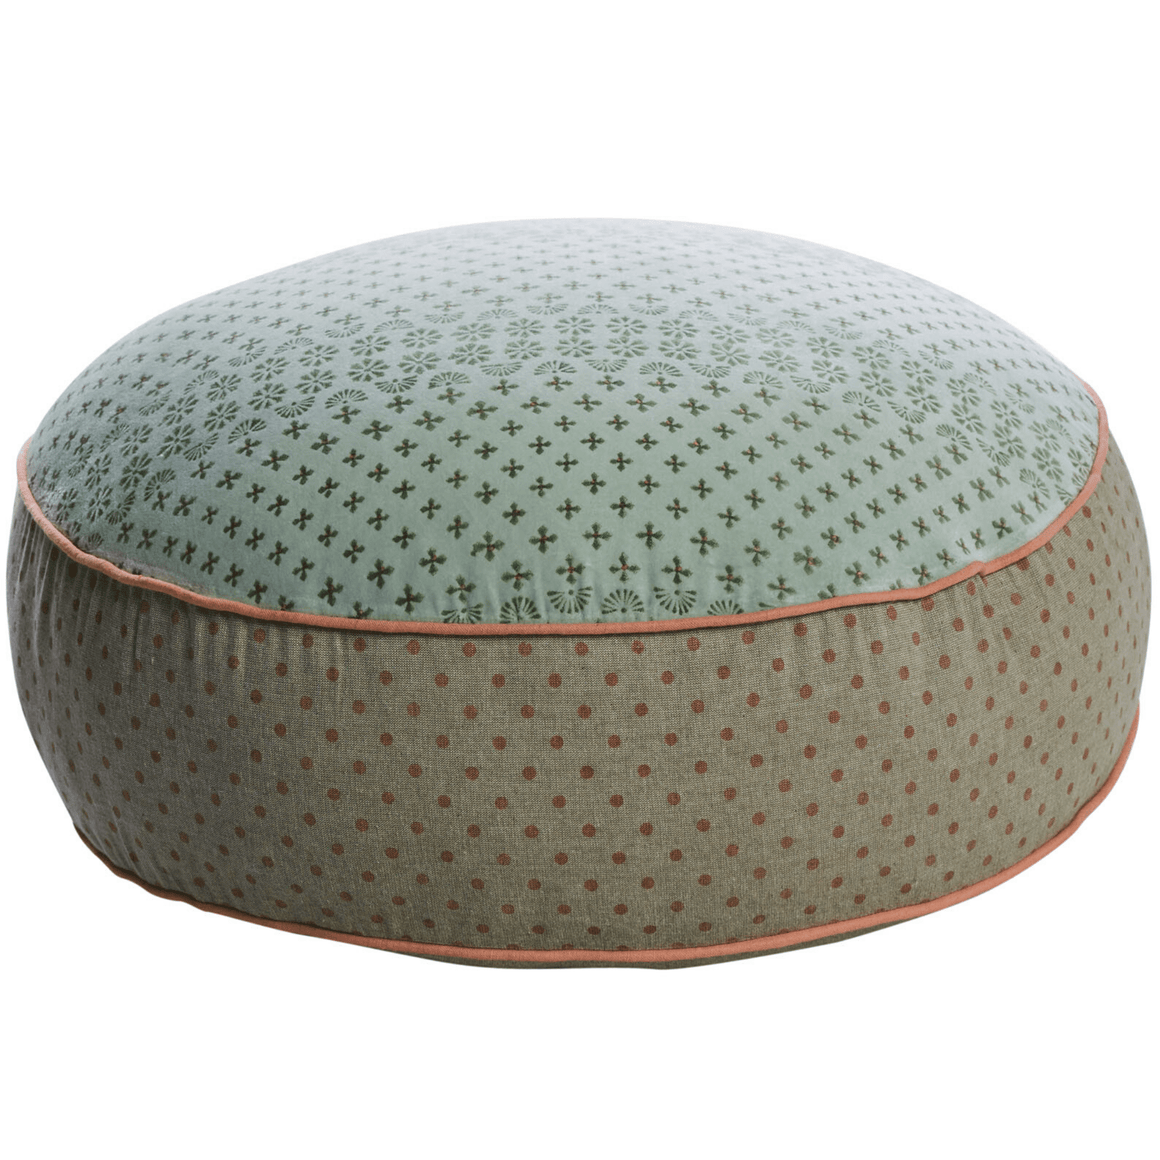 FLOOR POUFFE - BEAUTIFUL HAND BLOCK PRINTED & EMBROIDERED - Bowerbird on Argyle